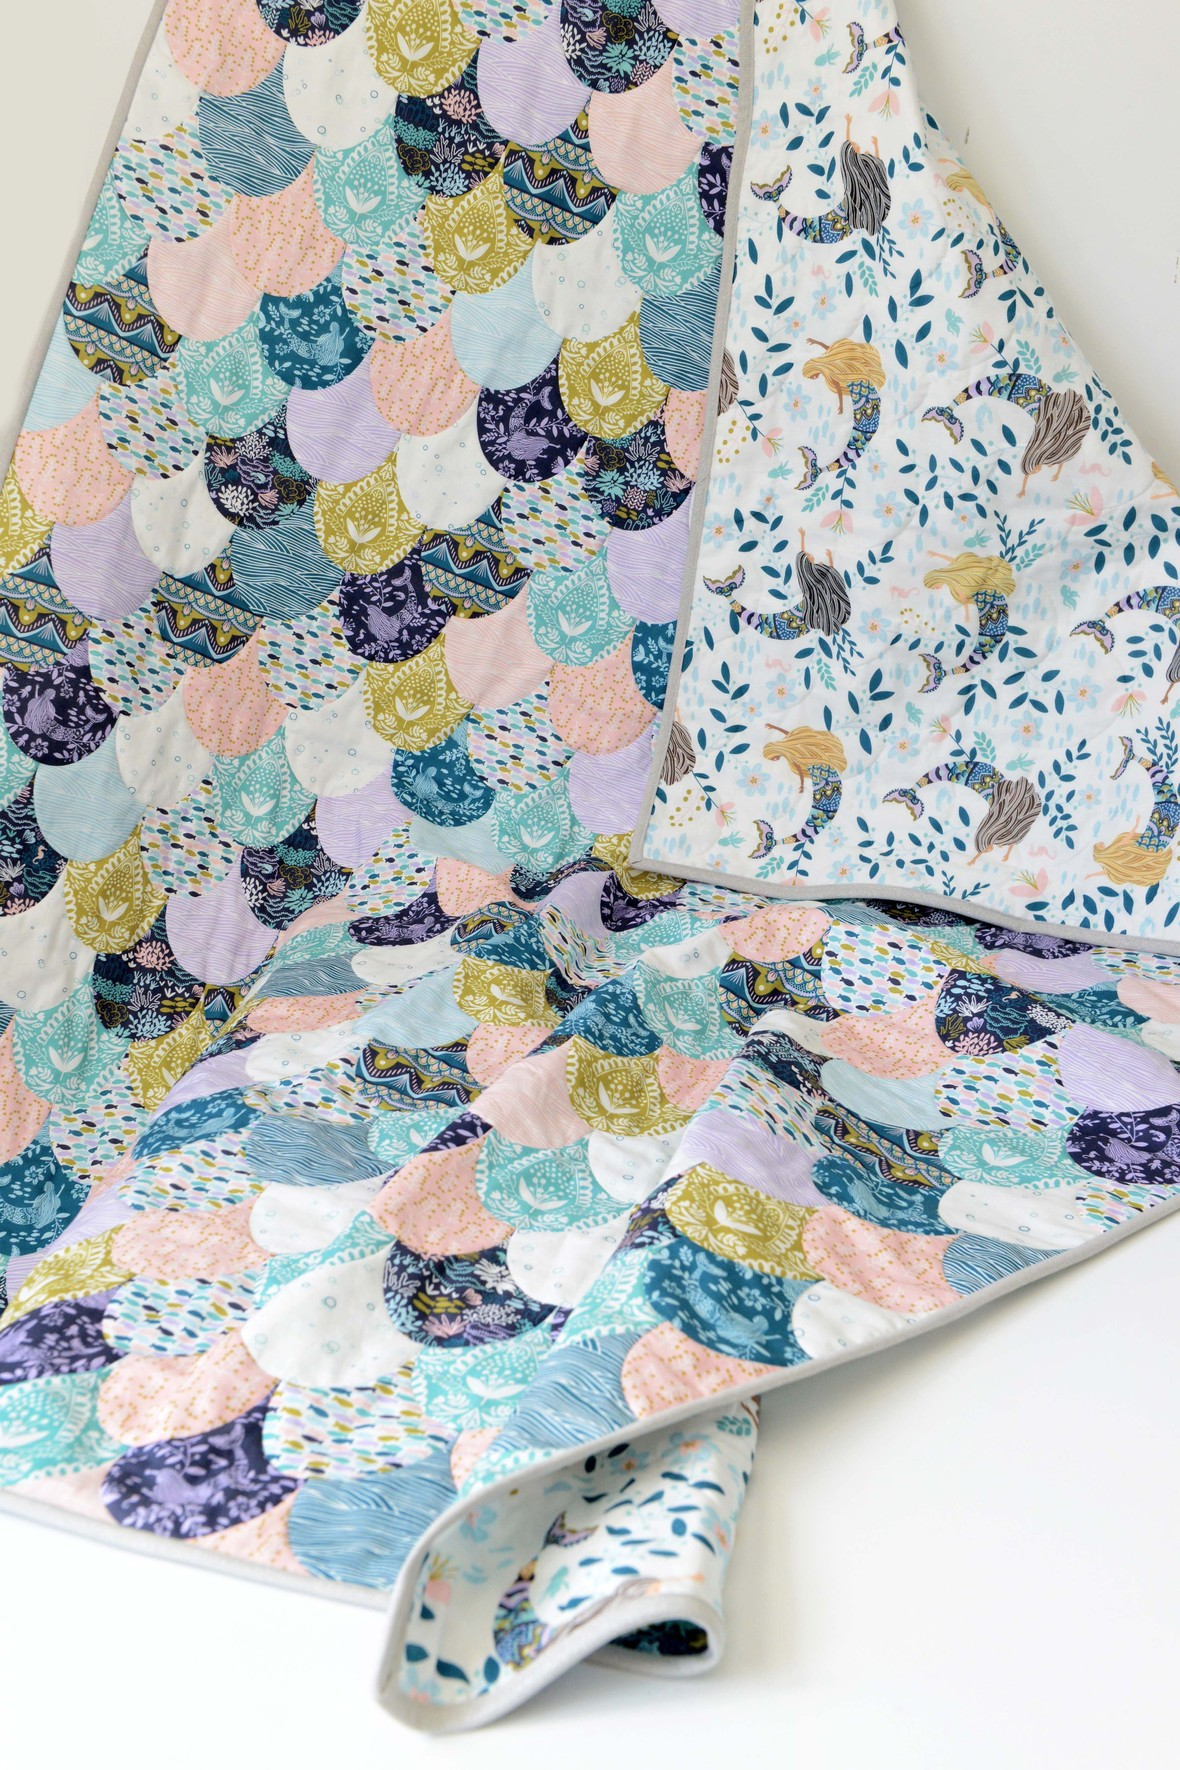 Siren Song Faux Patchwork Mermaid Quilt